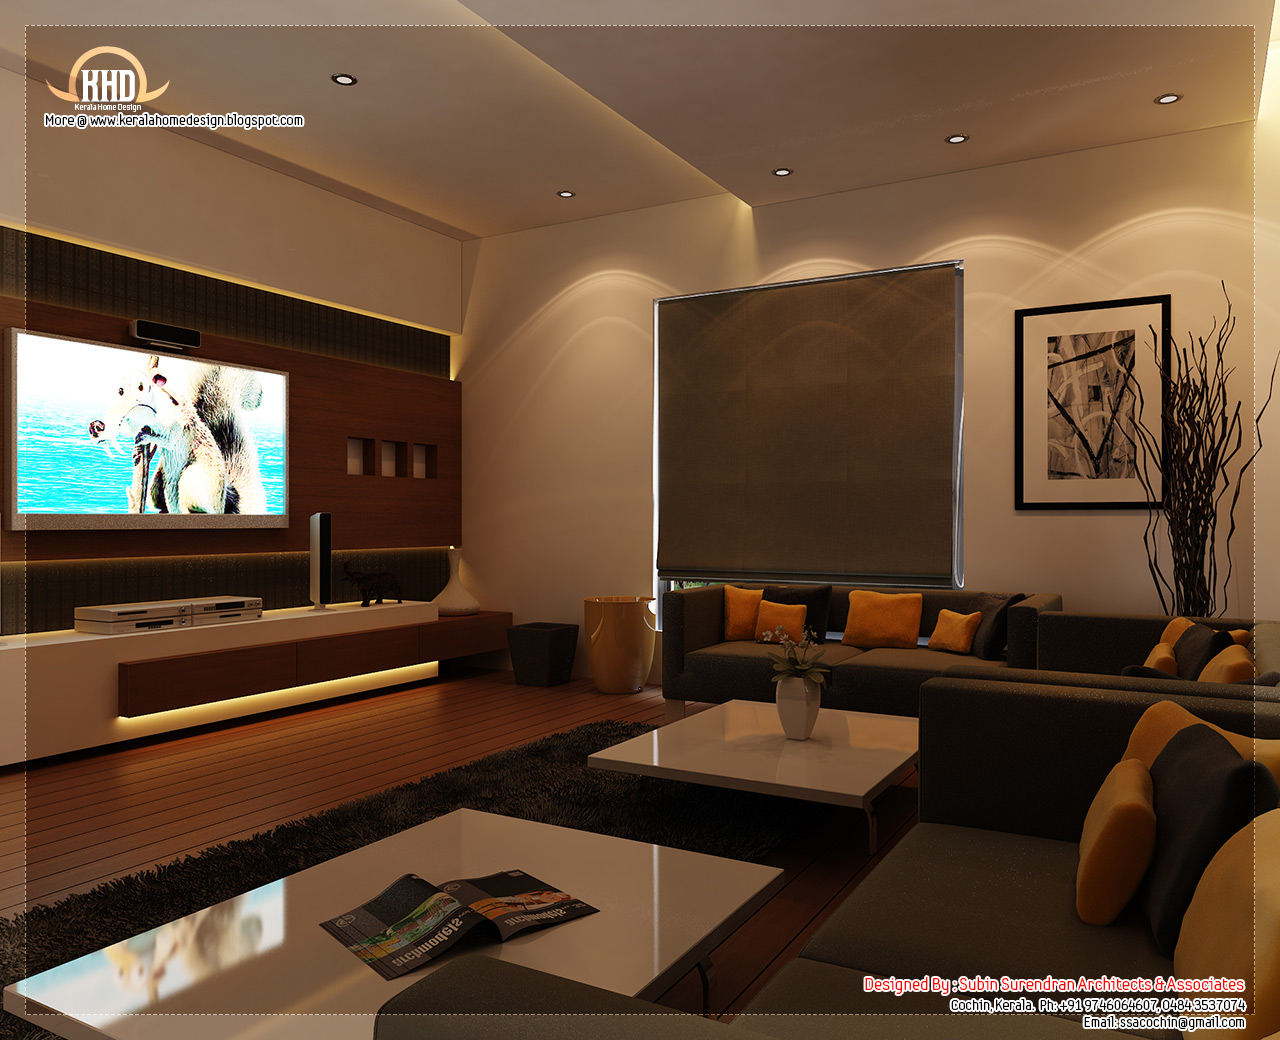 Beautiful home interior designs kerala home design and floor plans Home theatre room design ideas in india